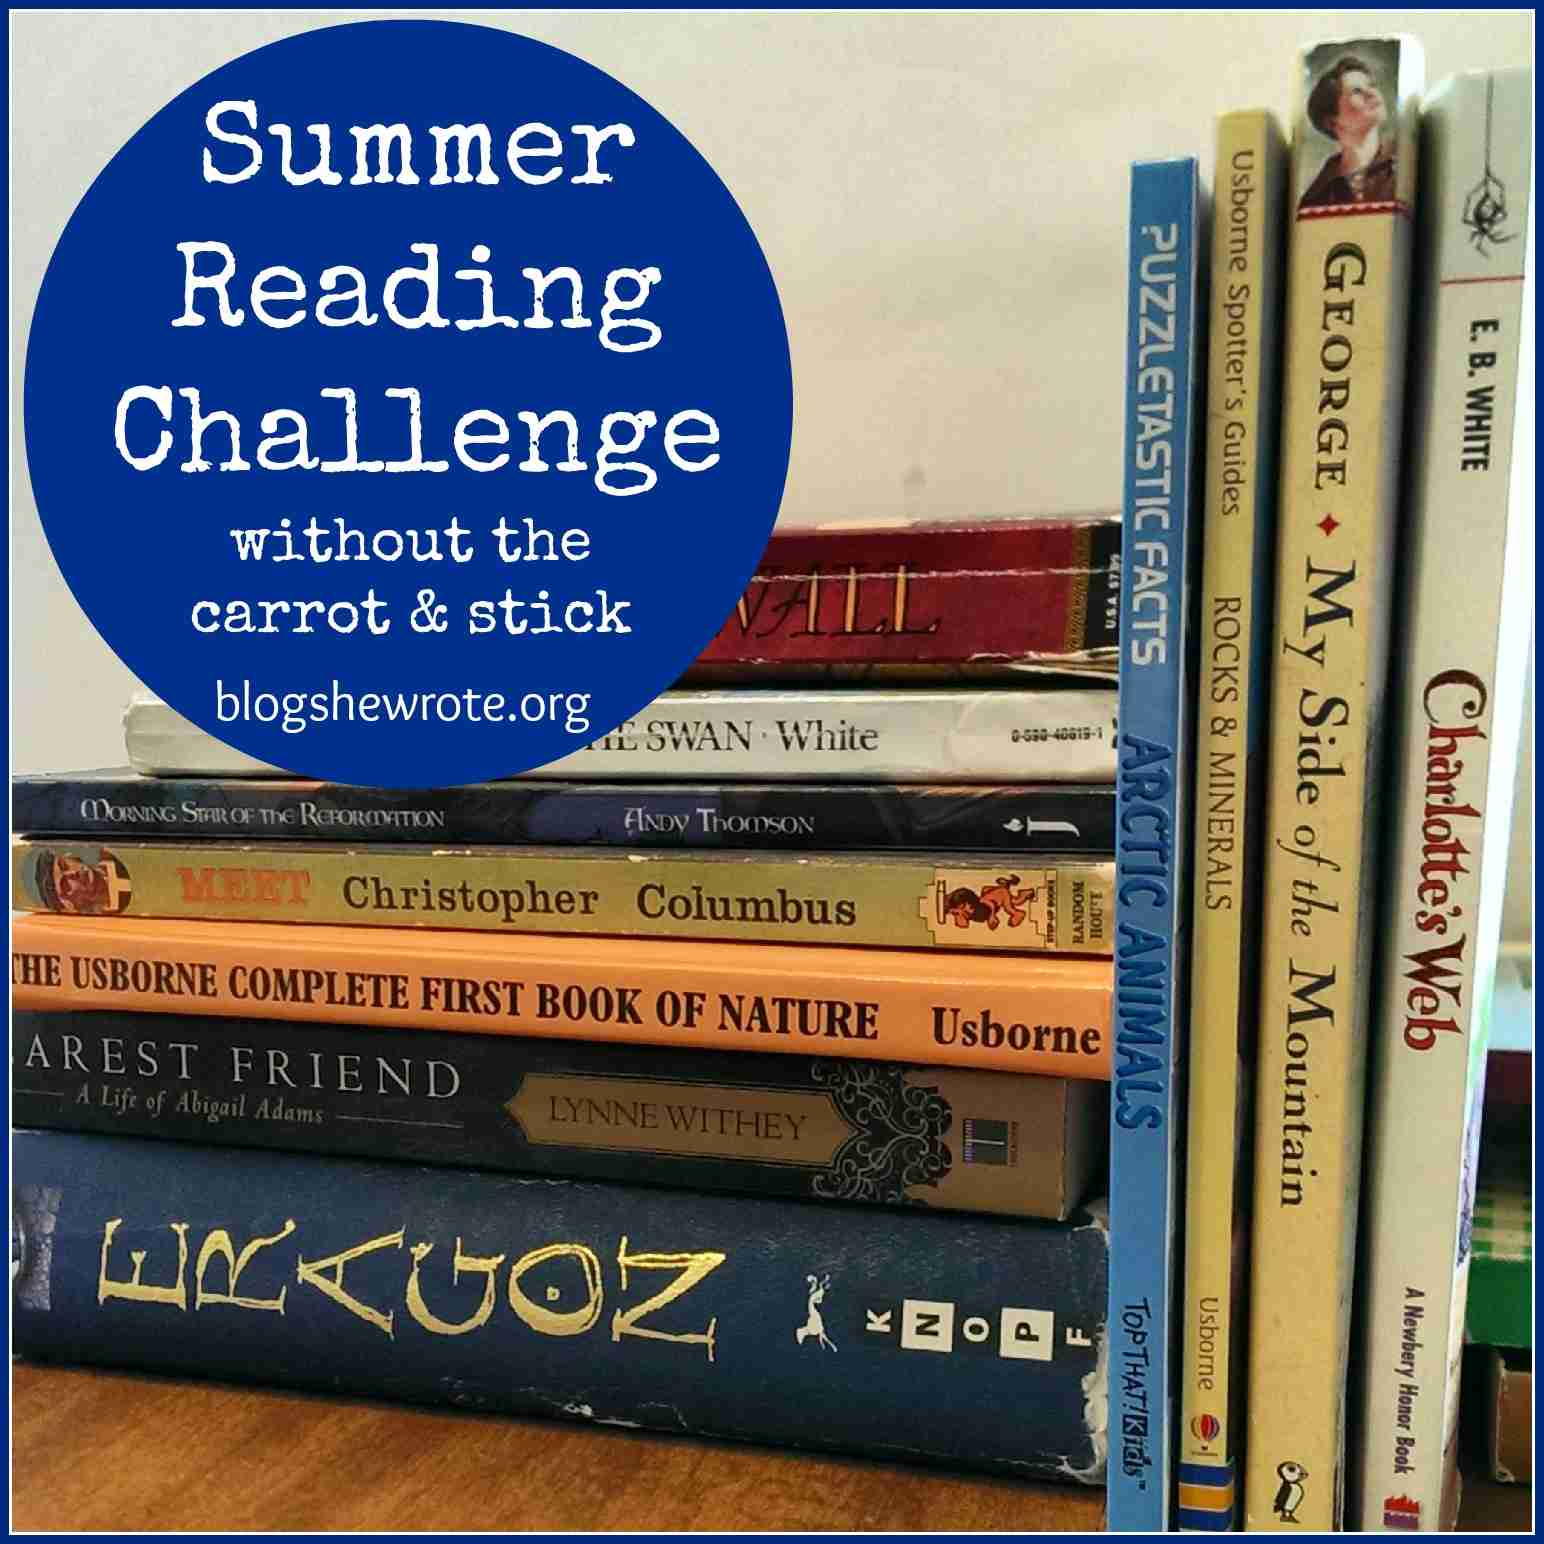 Blog, She Wrote: Summer Reading Challenge without the Carrot & the Stick